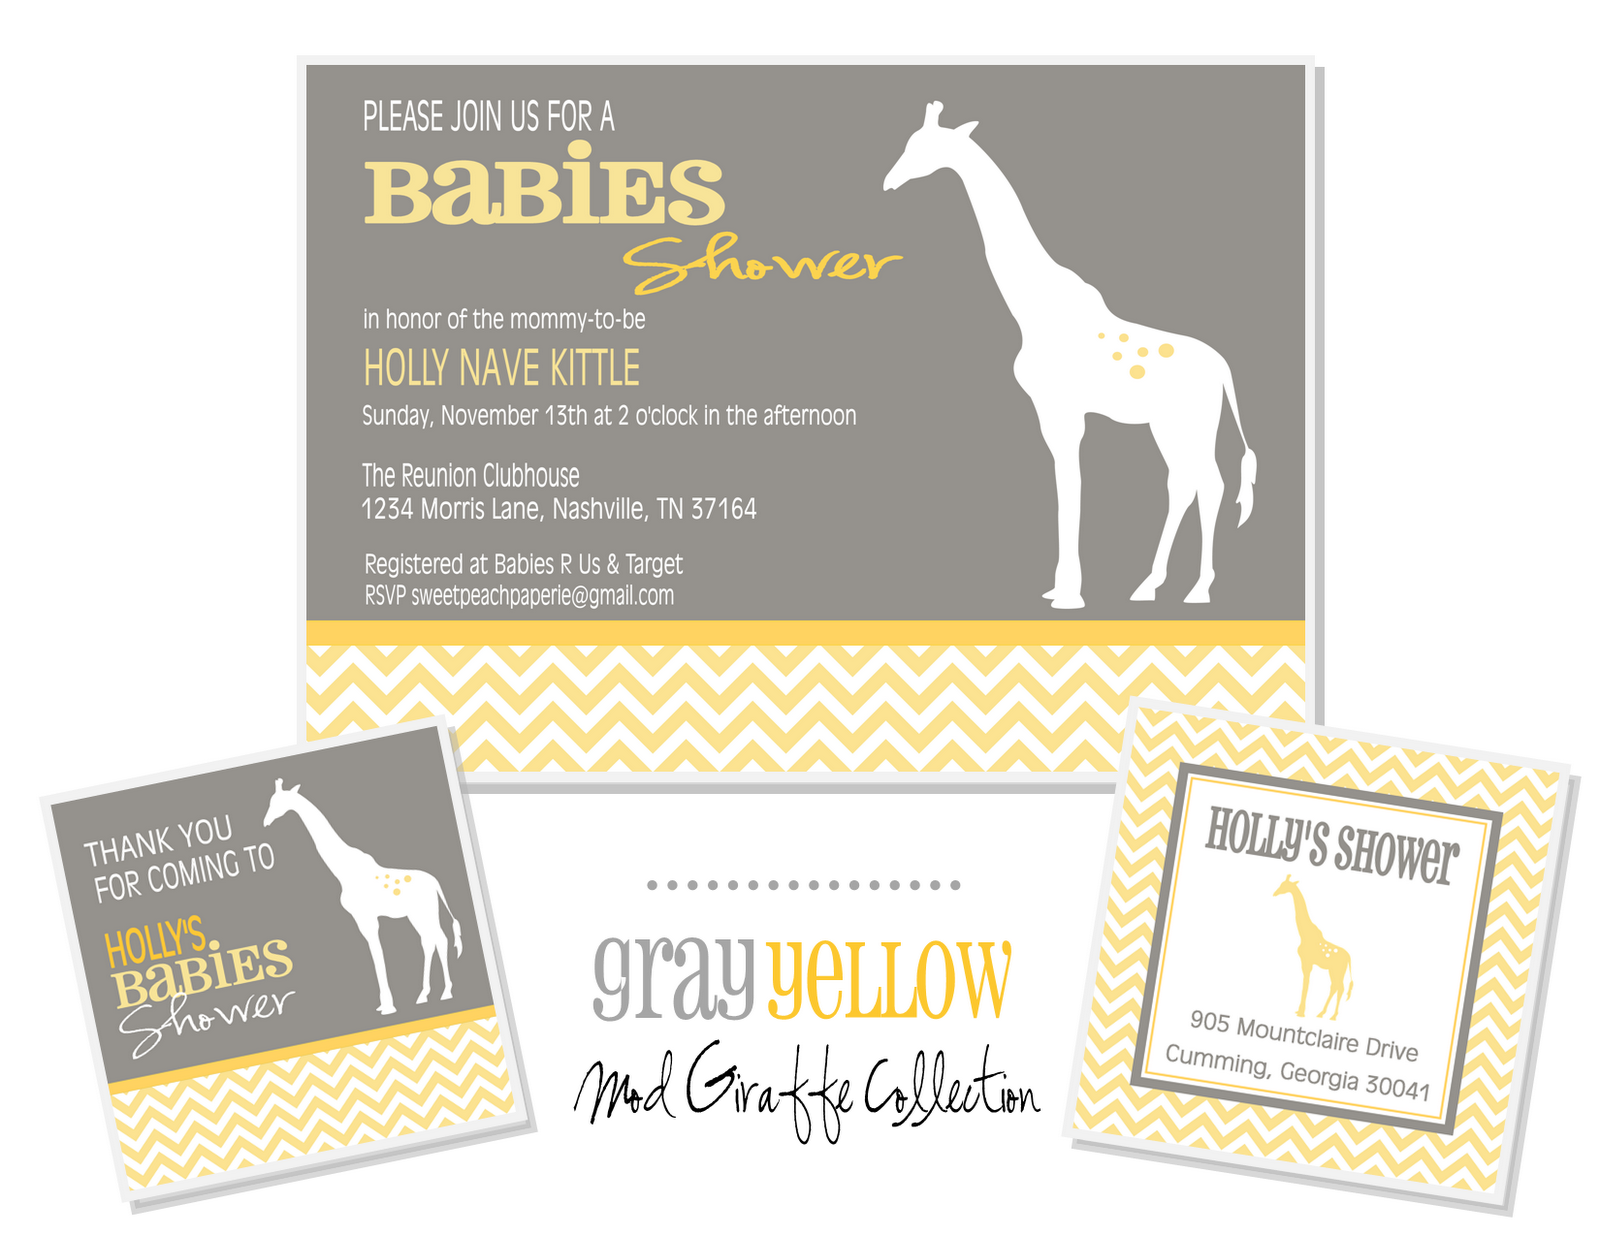 but here a few more fun details from the Mod Giraffe Baby Shower ...